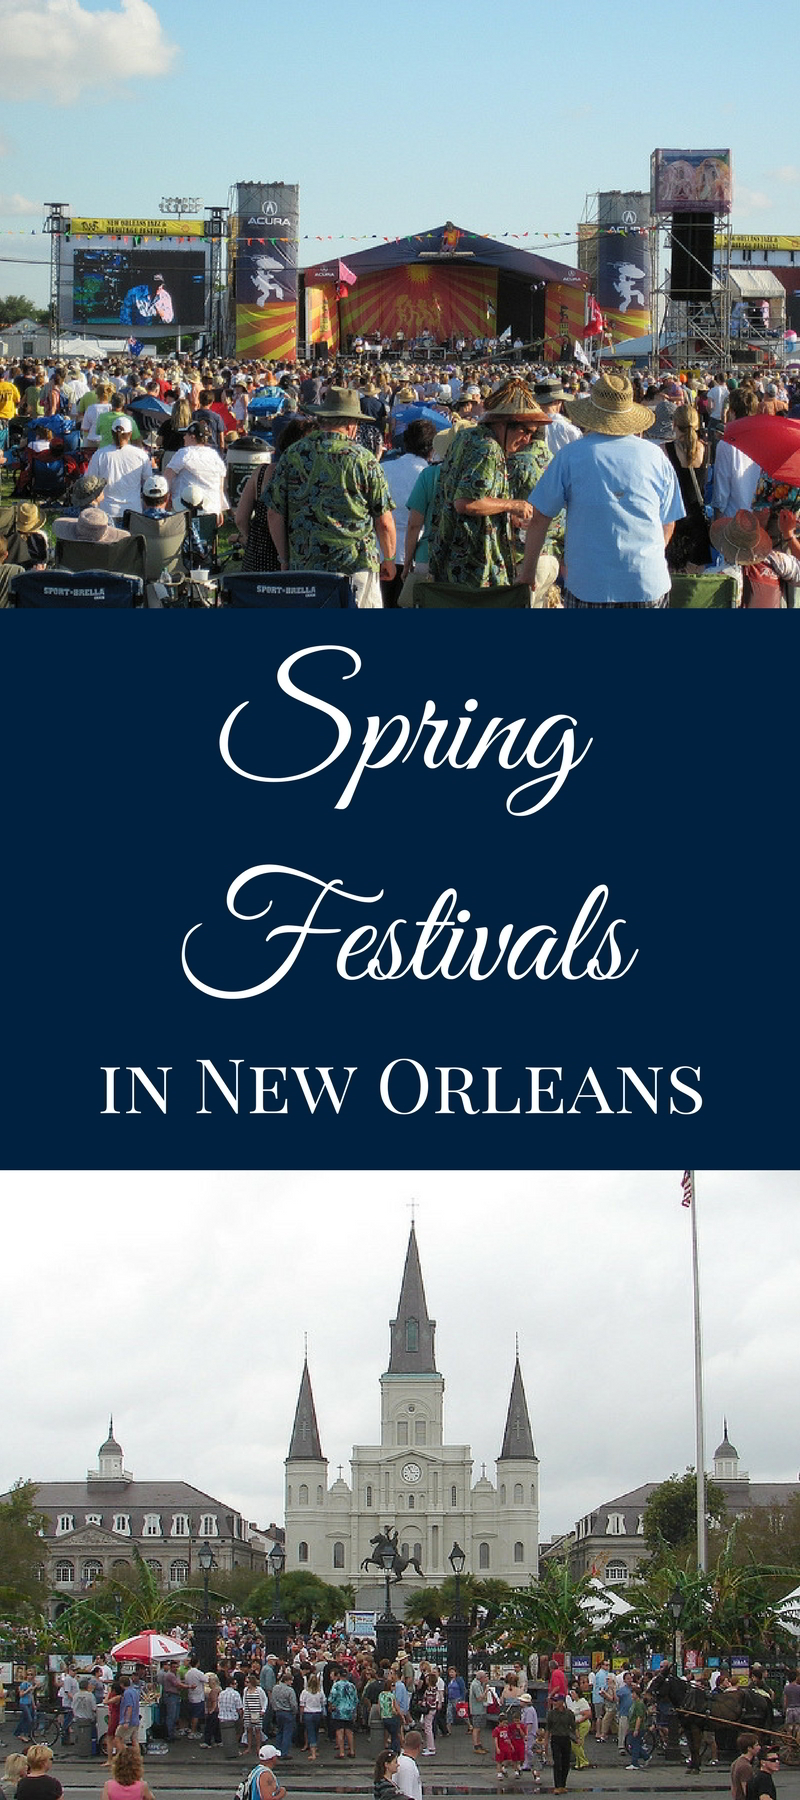 Spring is in the air and we're ready to celebrate. From St. Patrick's Day to French Quarter Festival to Jazz Fest, enjoy these New Orleans spring festivals!